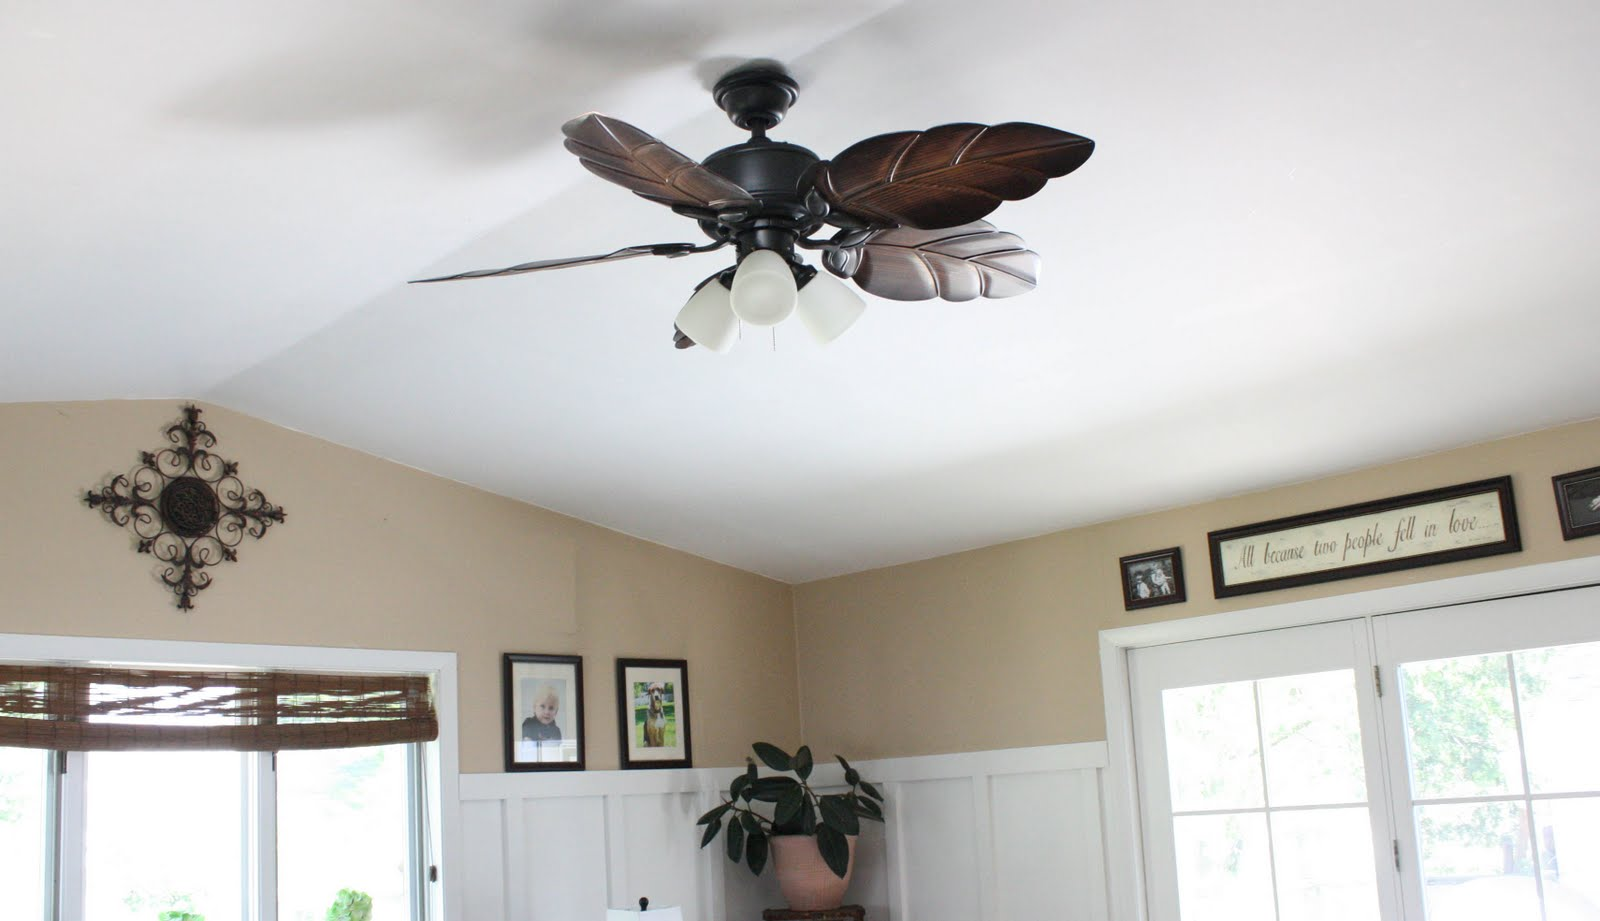 Design ceiling fan with blades metal leaf models and spotlights